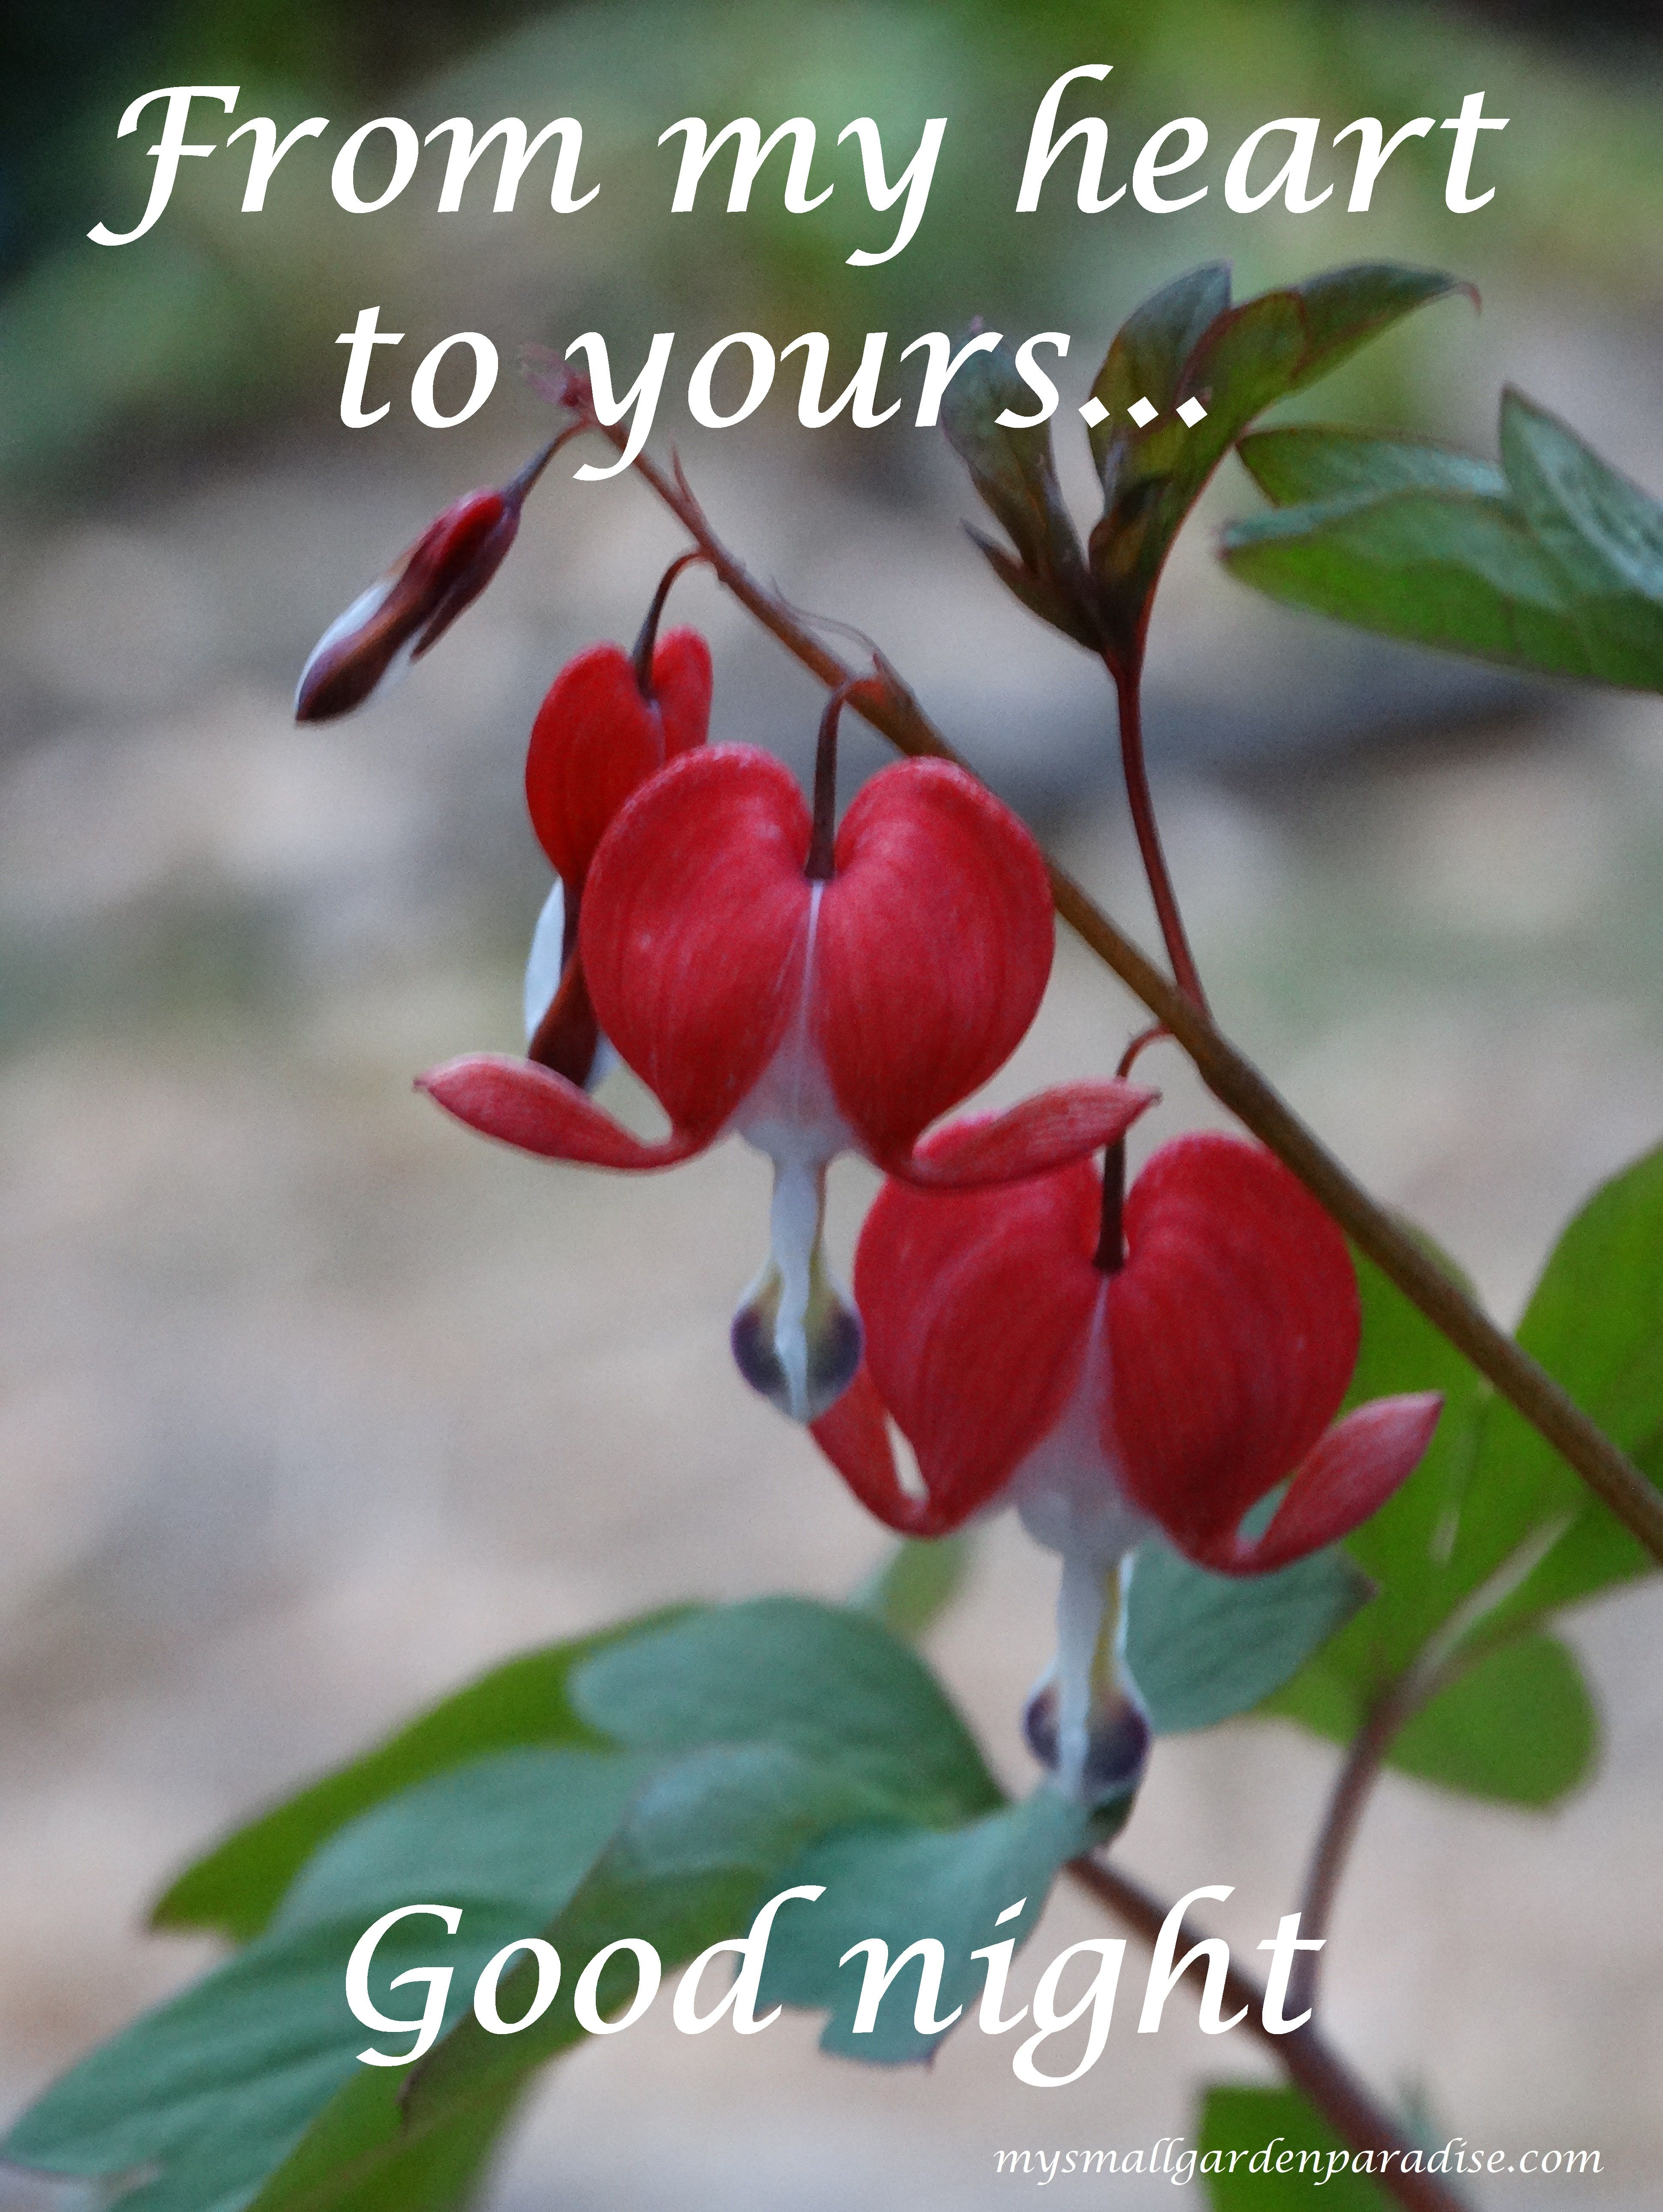 Red Bleeding Hearts My Gift Today From Hubby Mysmallgardenparadise Com Good Night Sweet Dreams Good Night Quotes Morning Images